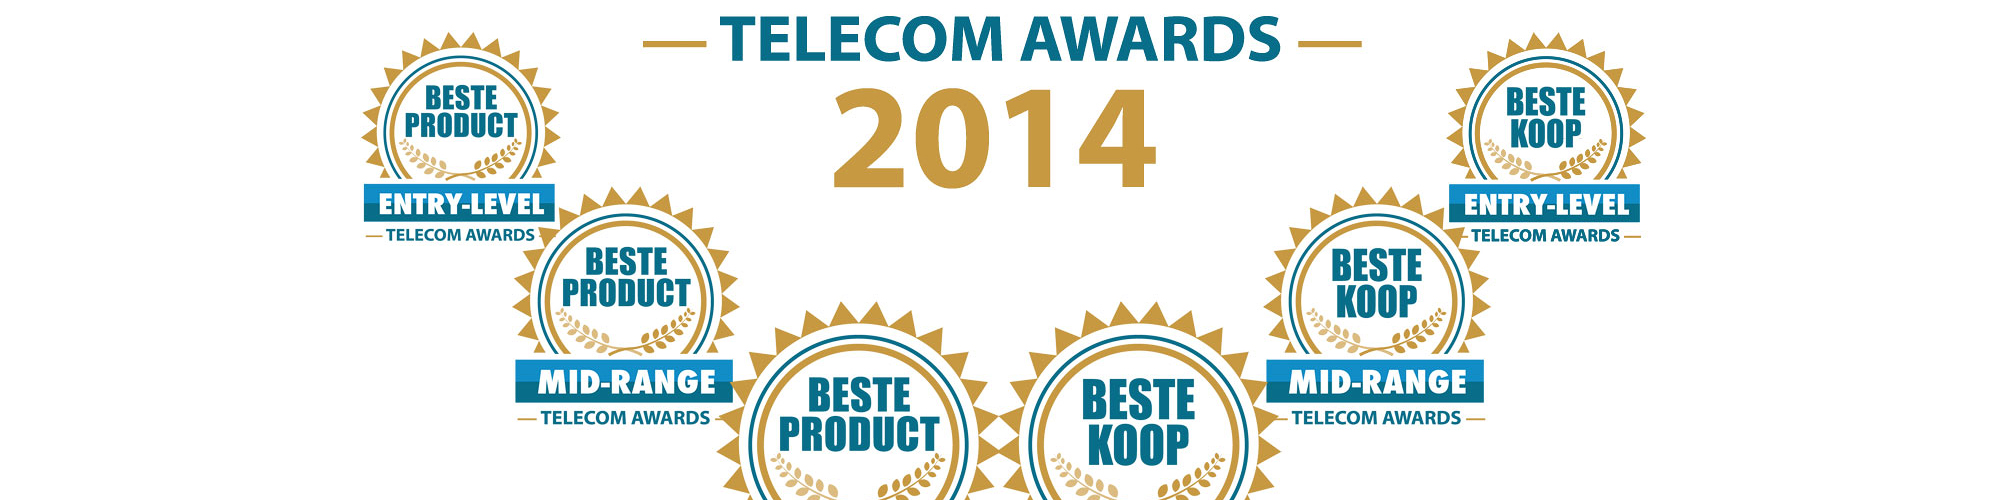 Winnaars Telecom Awards 2014 bekend